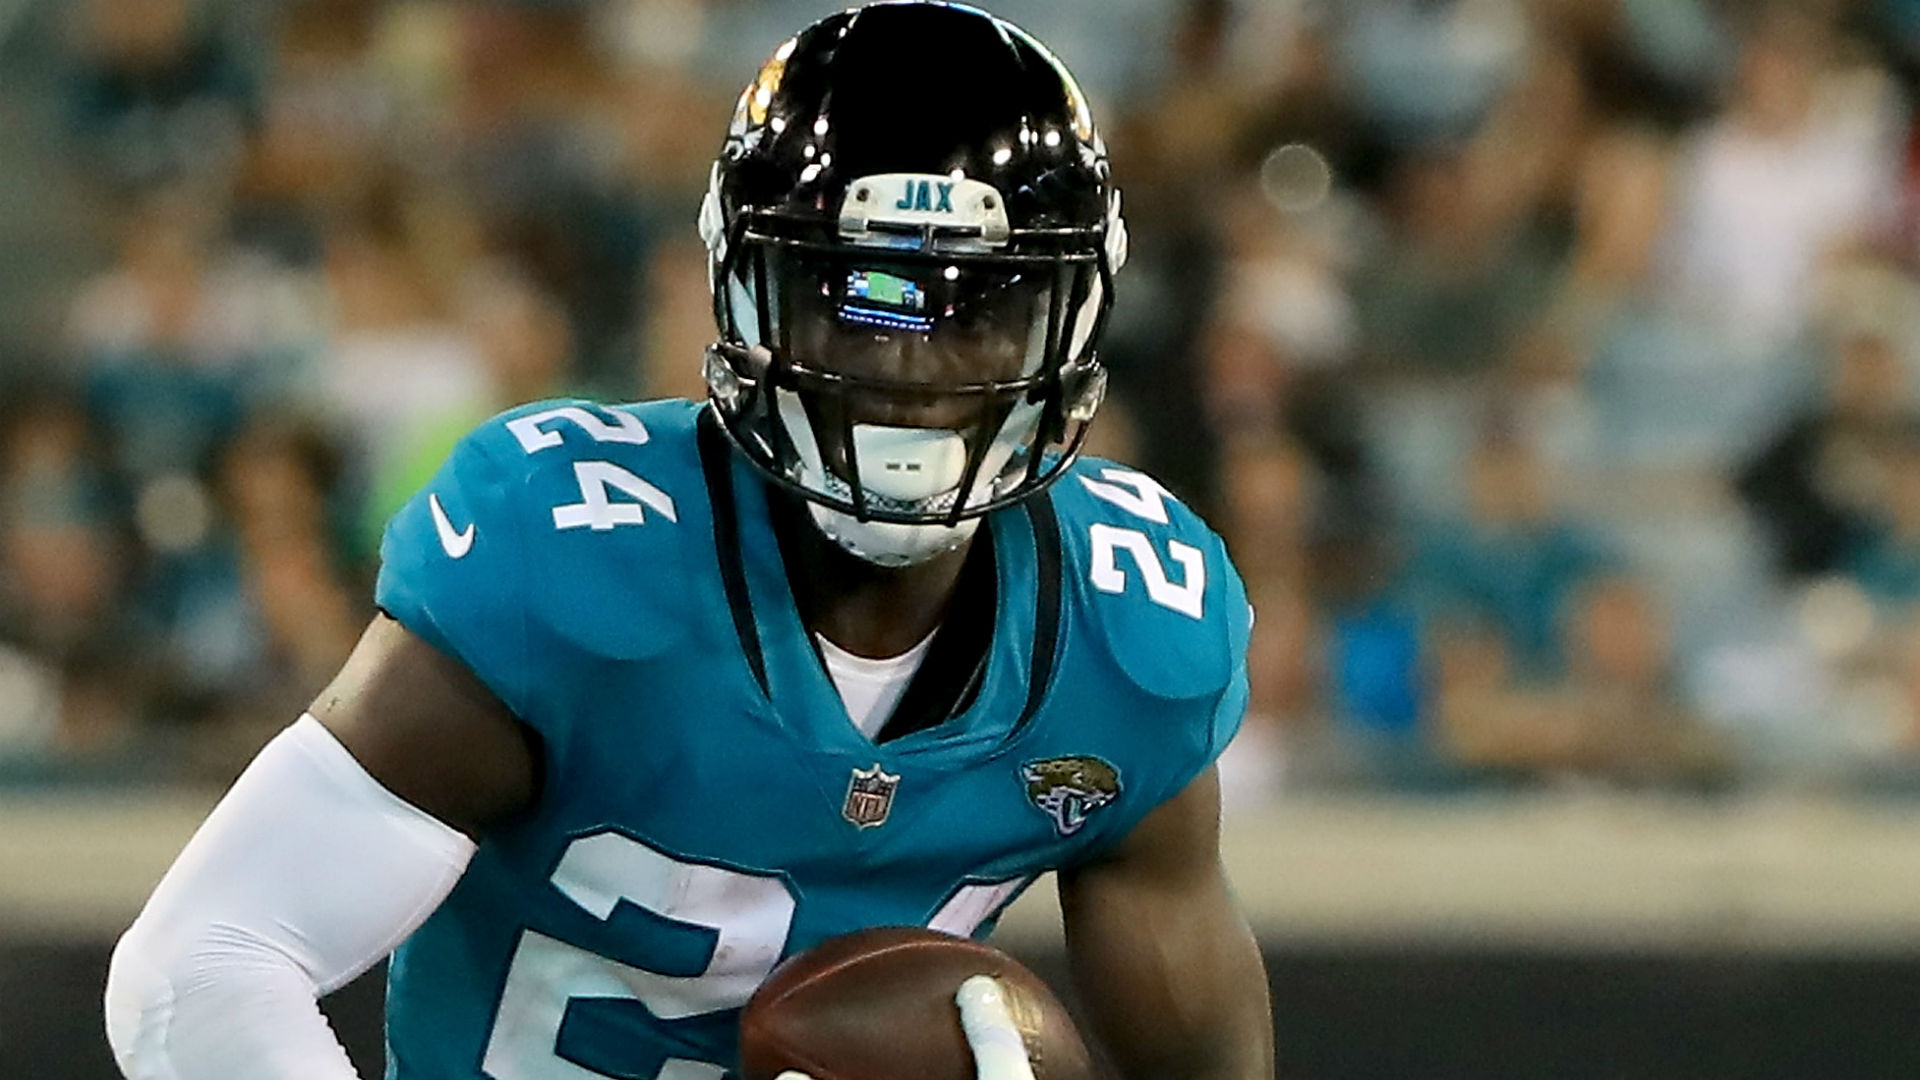 Best fantasy football waiver wire pickups for Week 5 | Sporting News